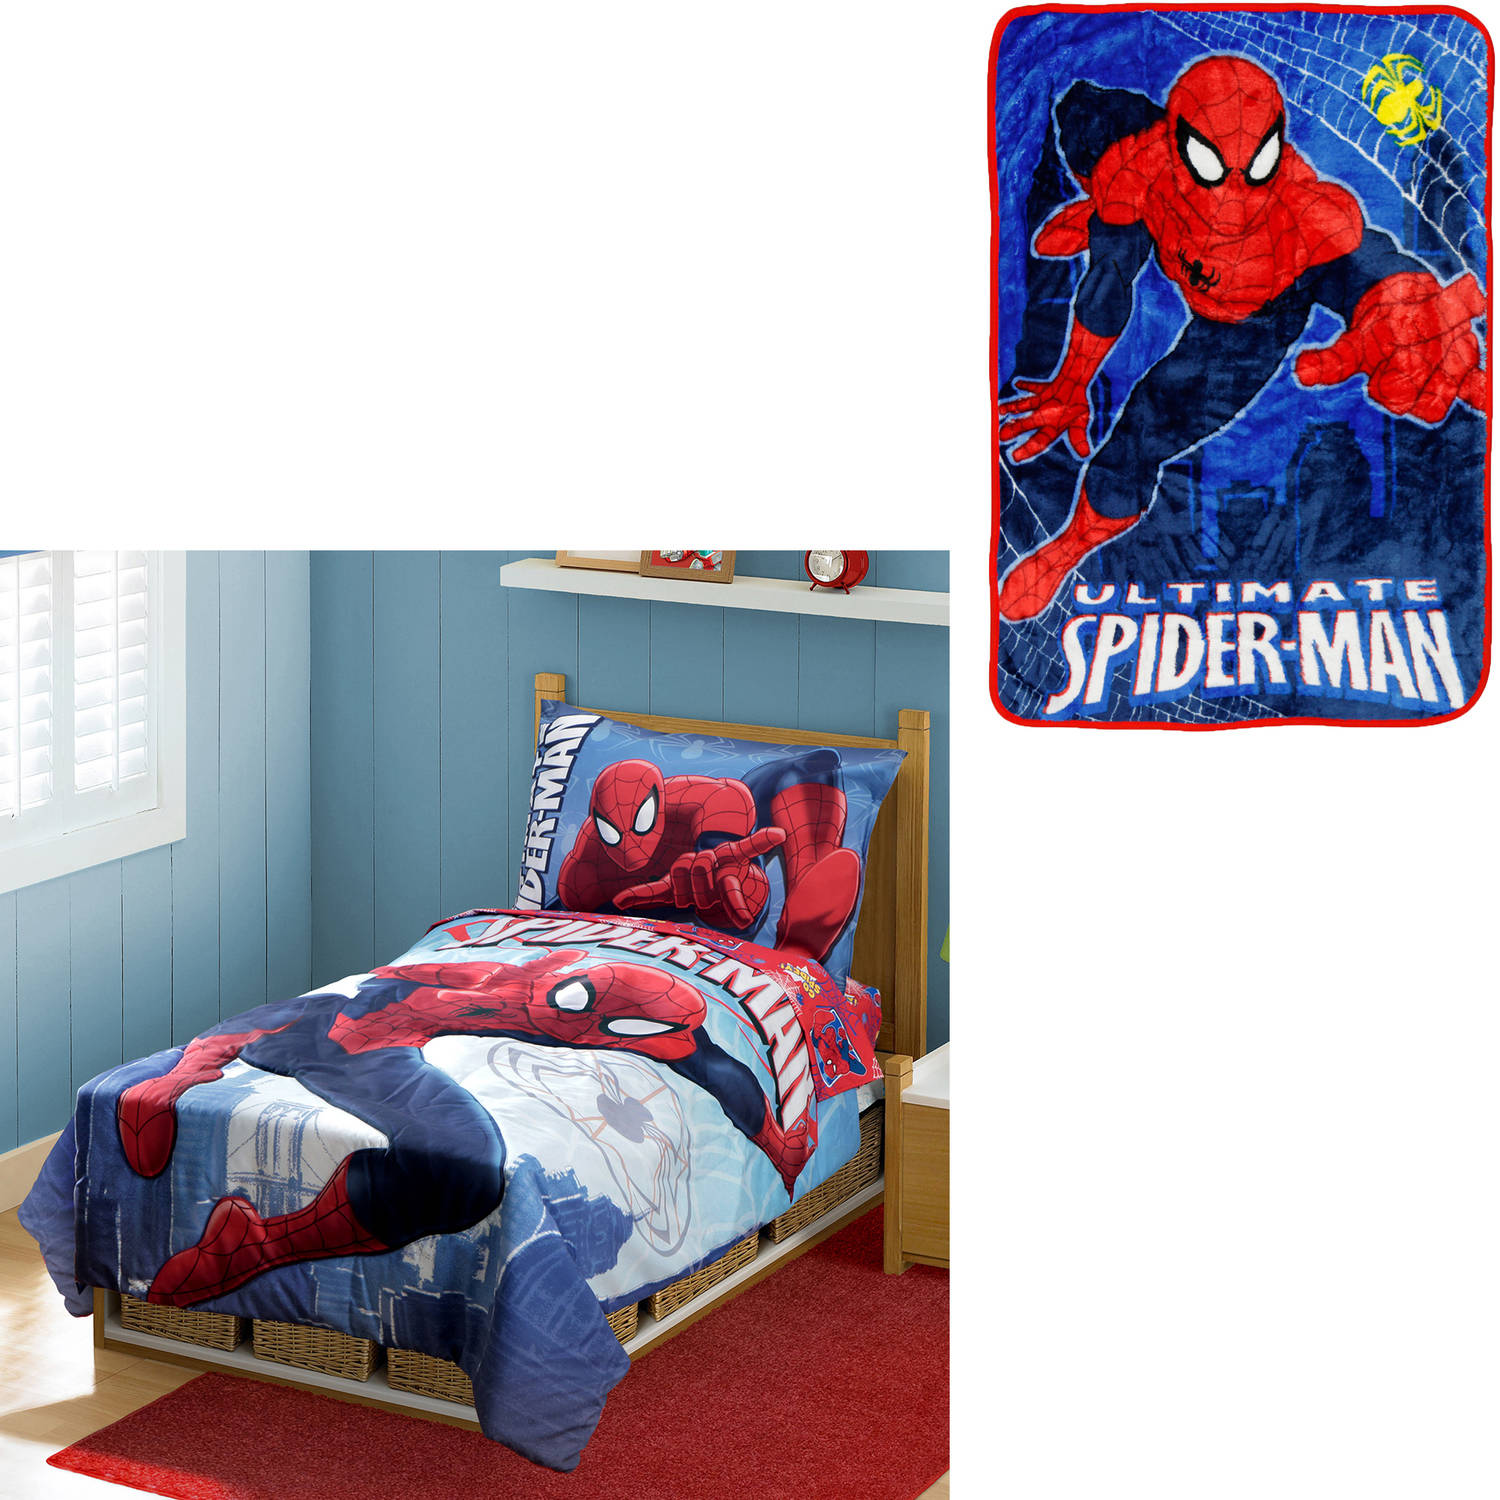 been spiderman as a to interior set thoughts of bed my build on has moved now room his this kids luke large bedroom decorating and